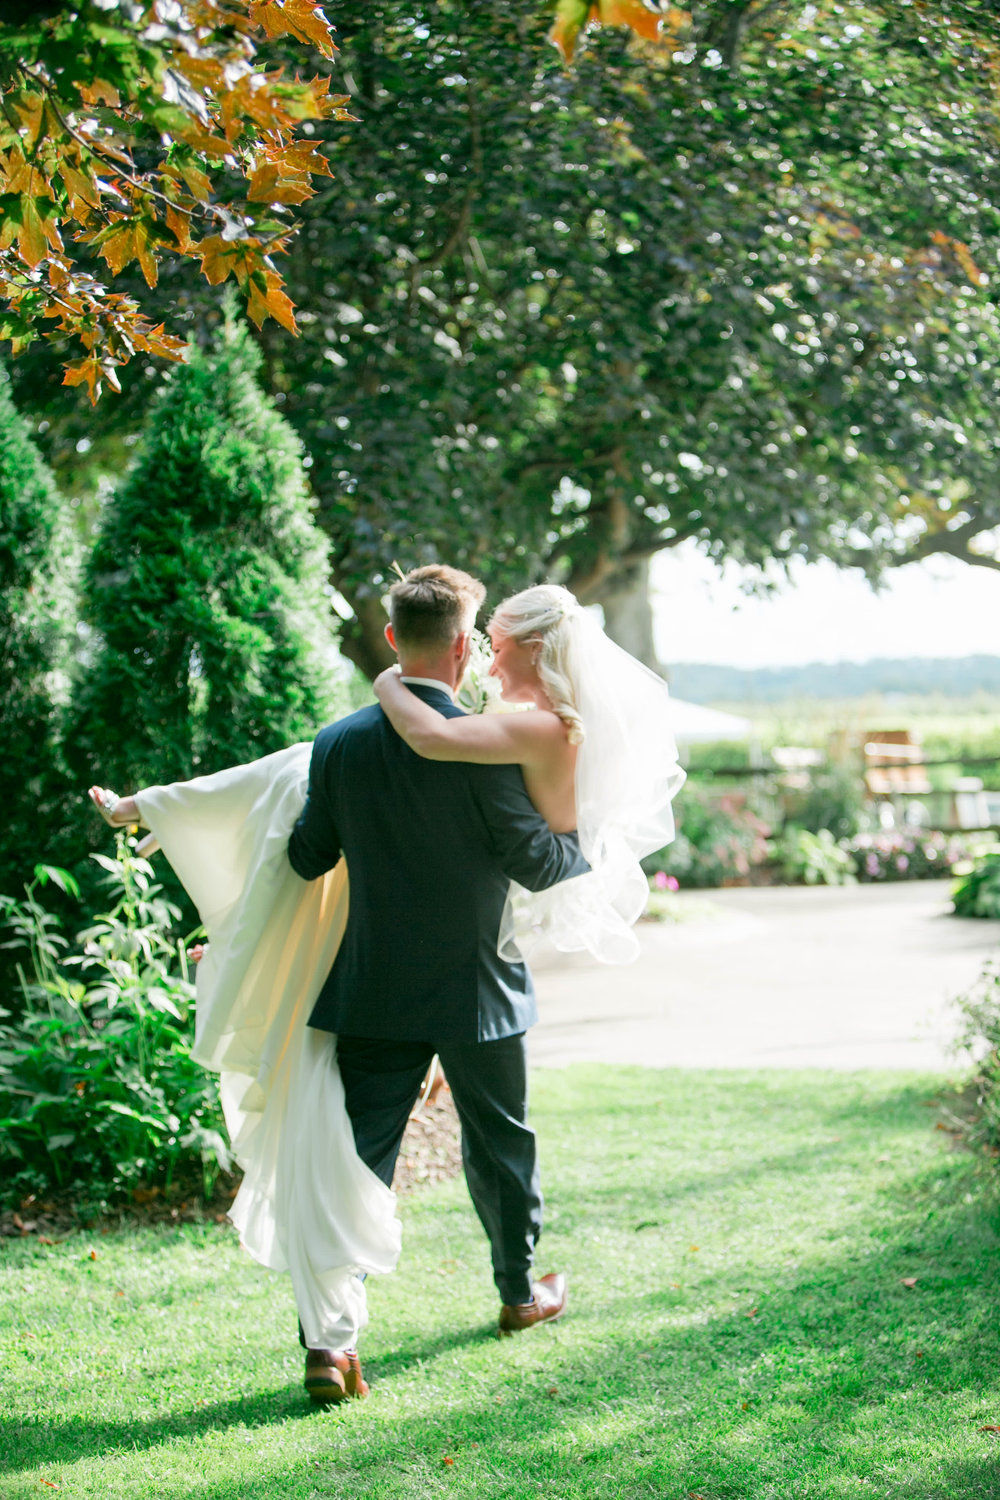 Maddy___Brandon___Daniel_Ricci_Weddings_High_Res._Finals_323.jpg